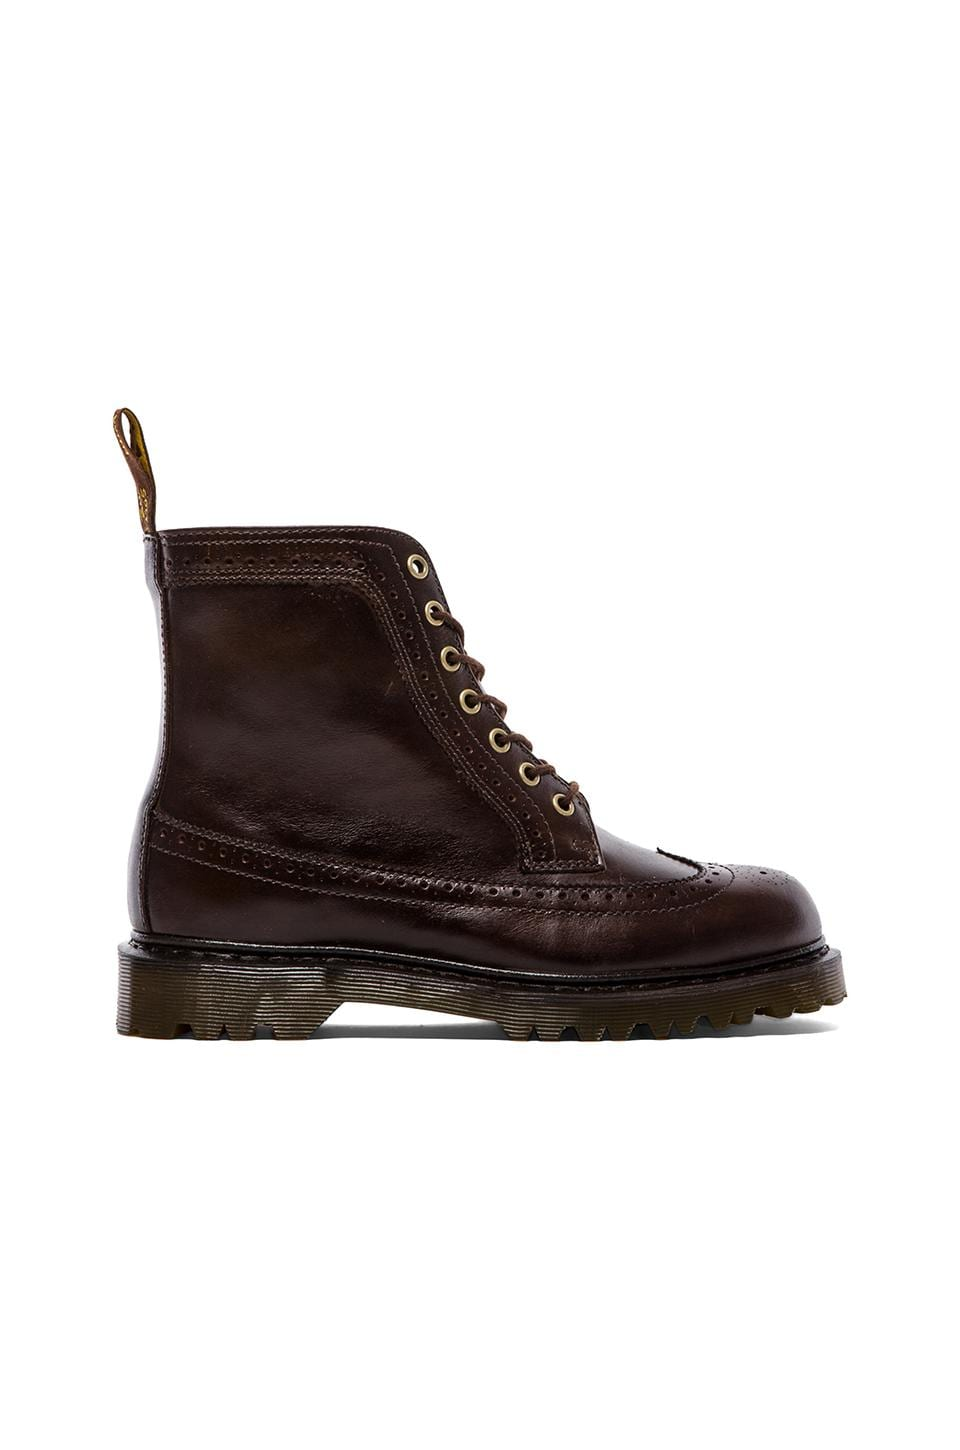 Dr. Martens Fitzroy 7-Eye Brogue Boot in Dark Brown